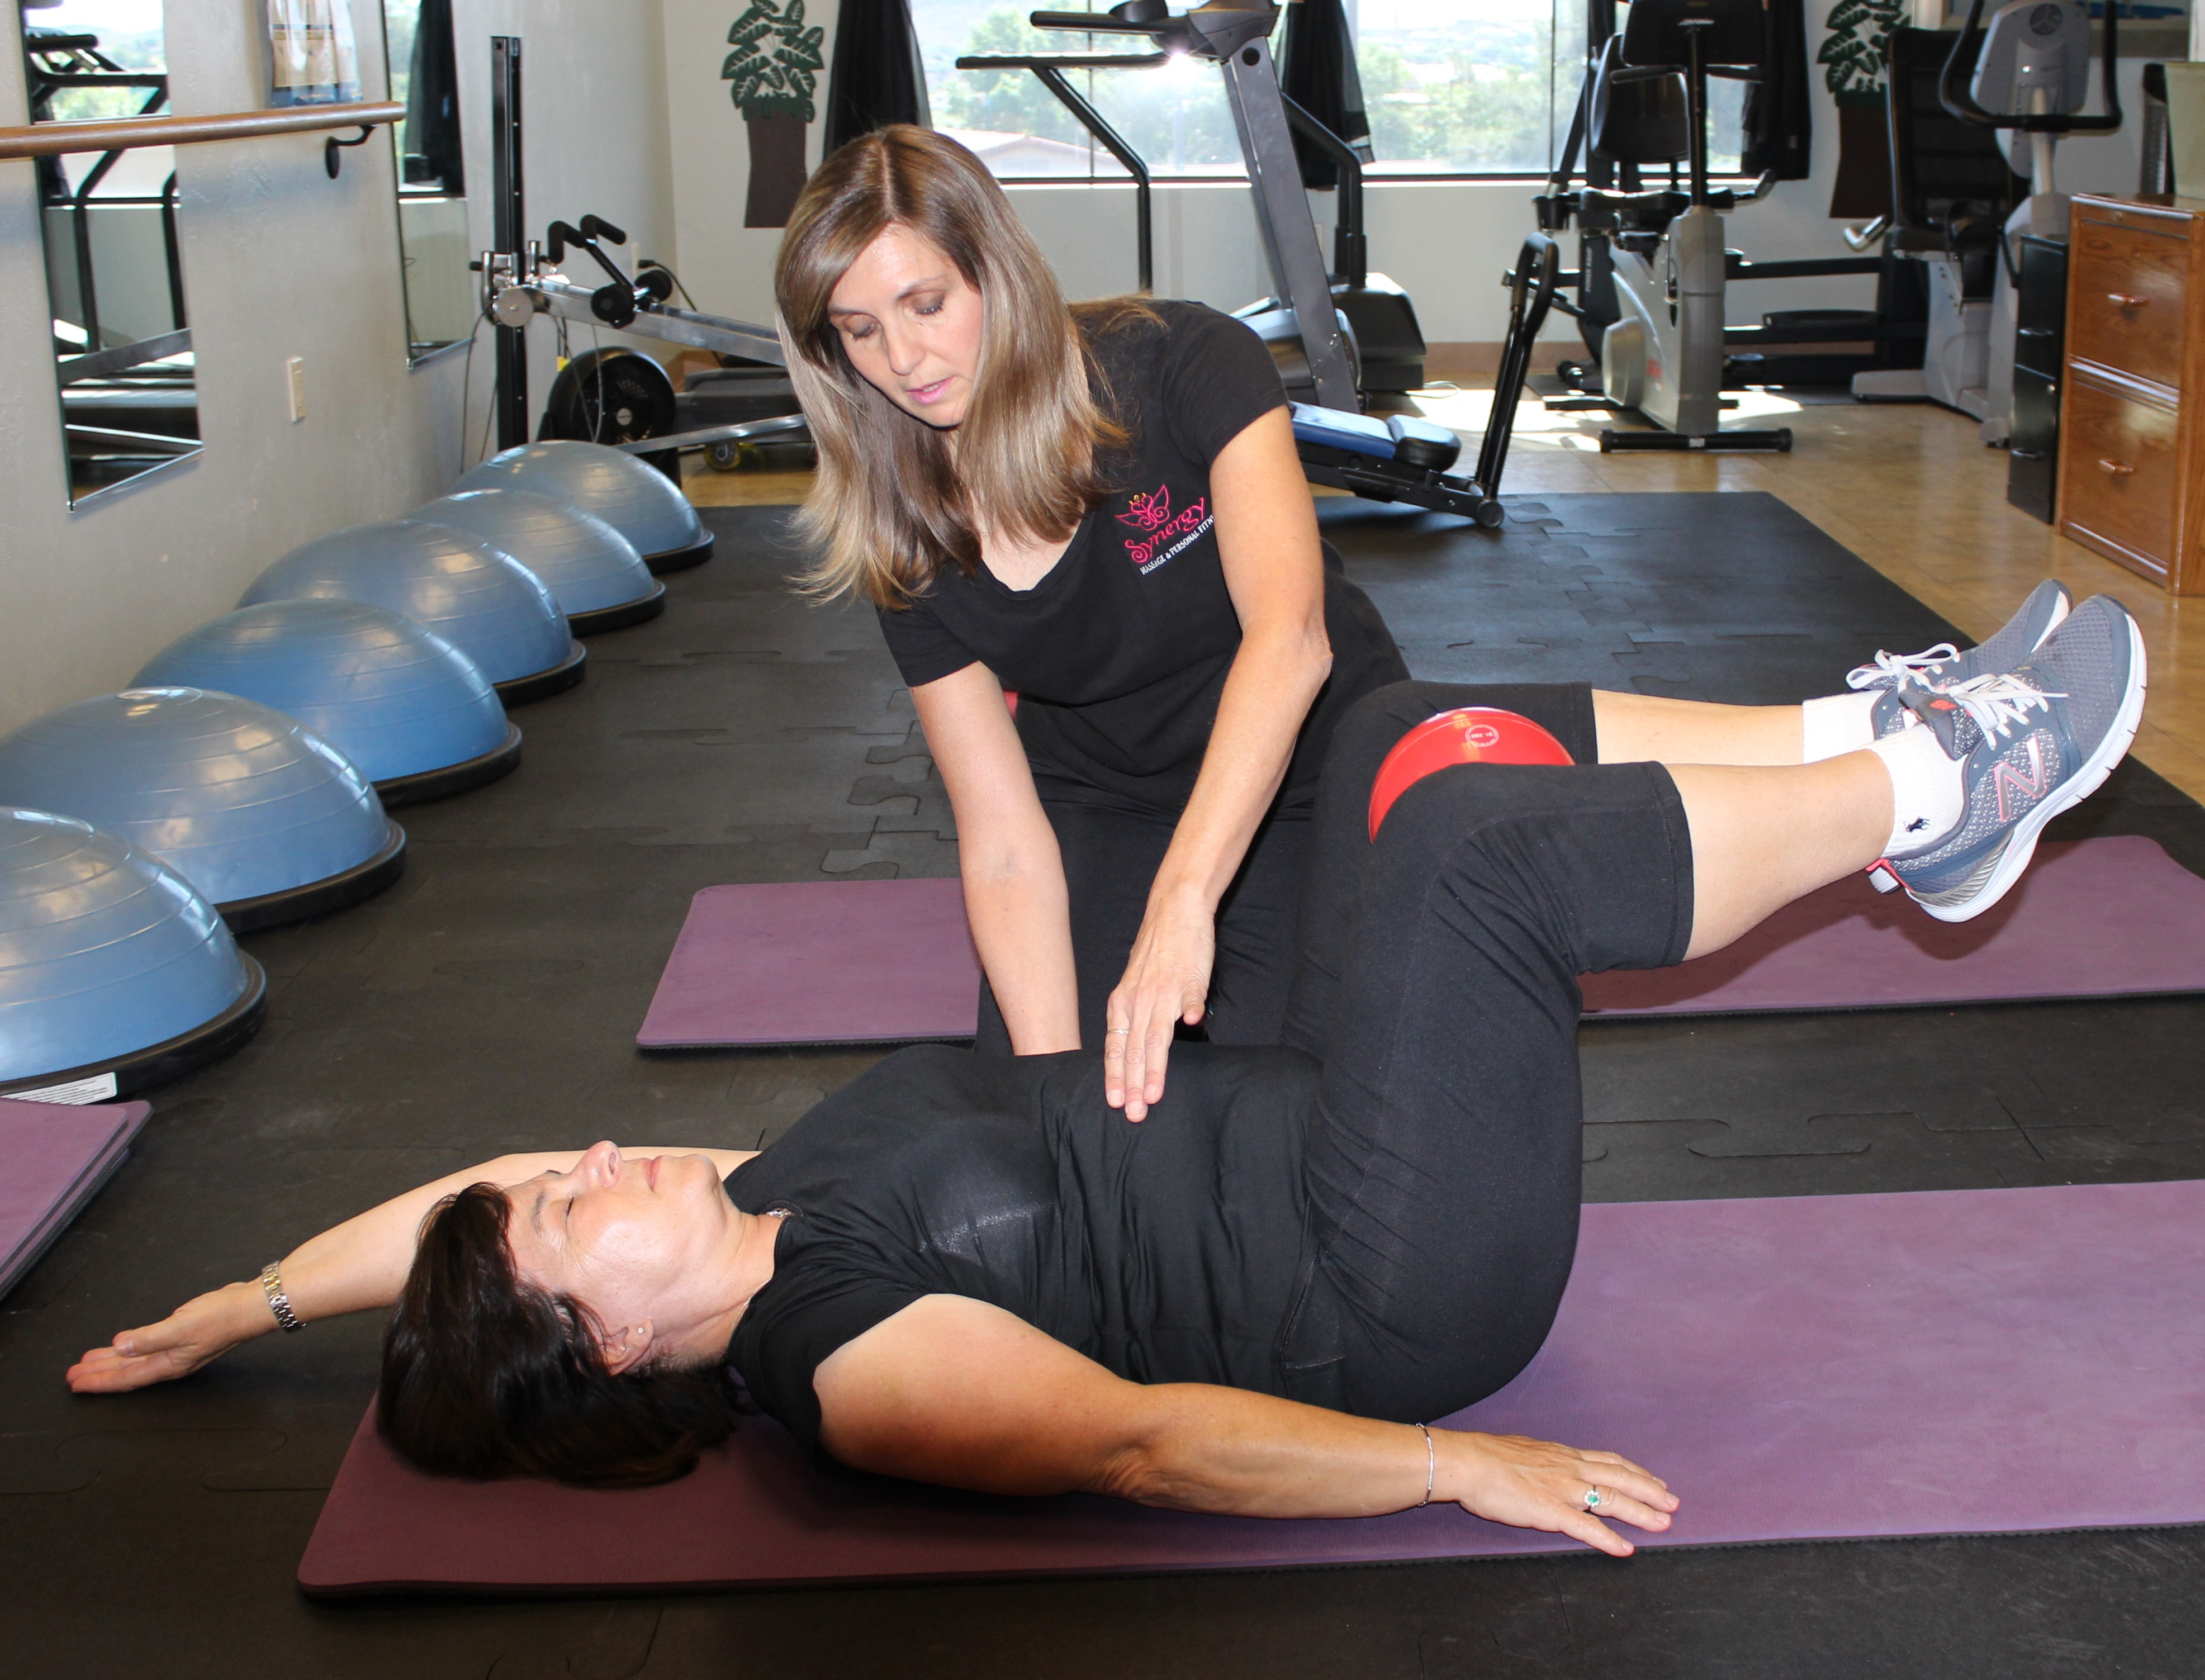 dating a physical trainer why dating a younger girl is good